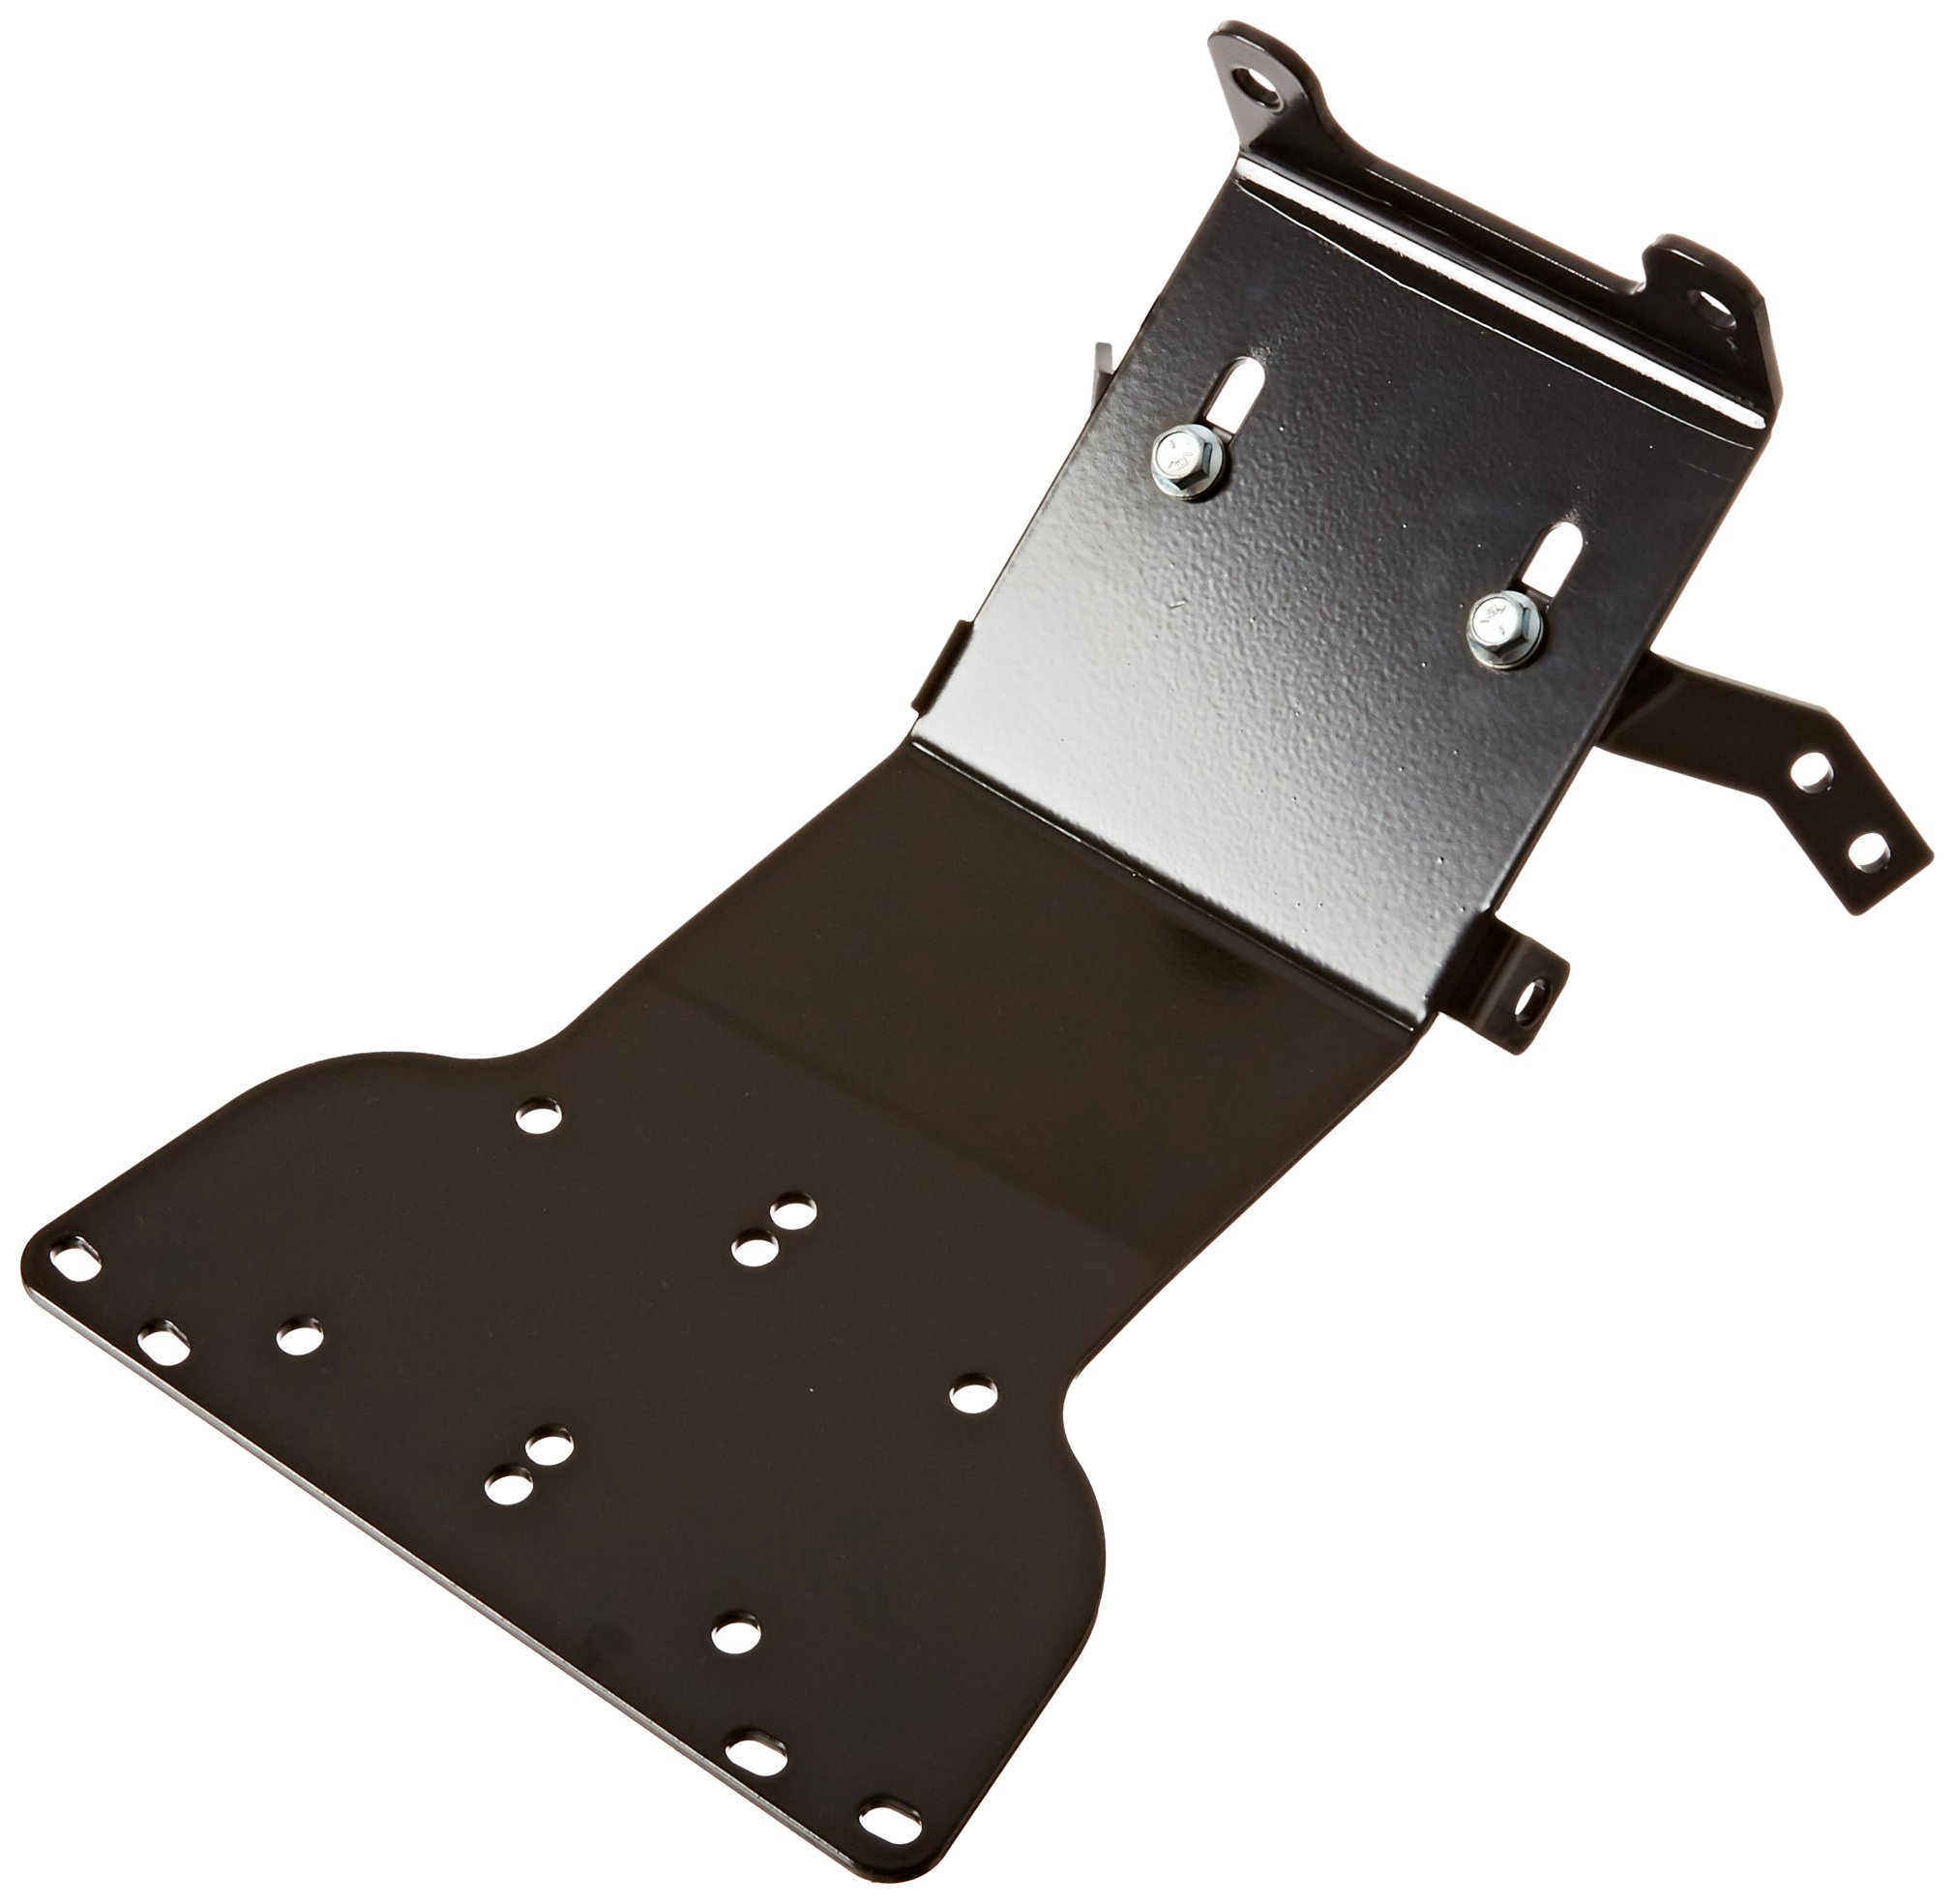 KFI Products 100505 Winch Mount for Honda Rancher 350/400 by KFI Products